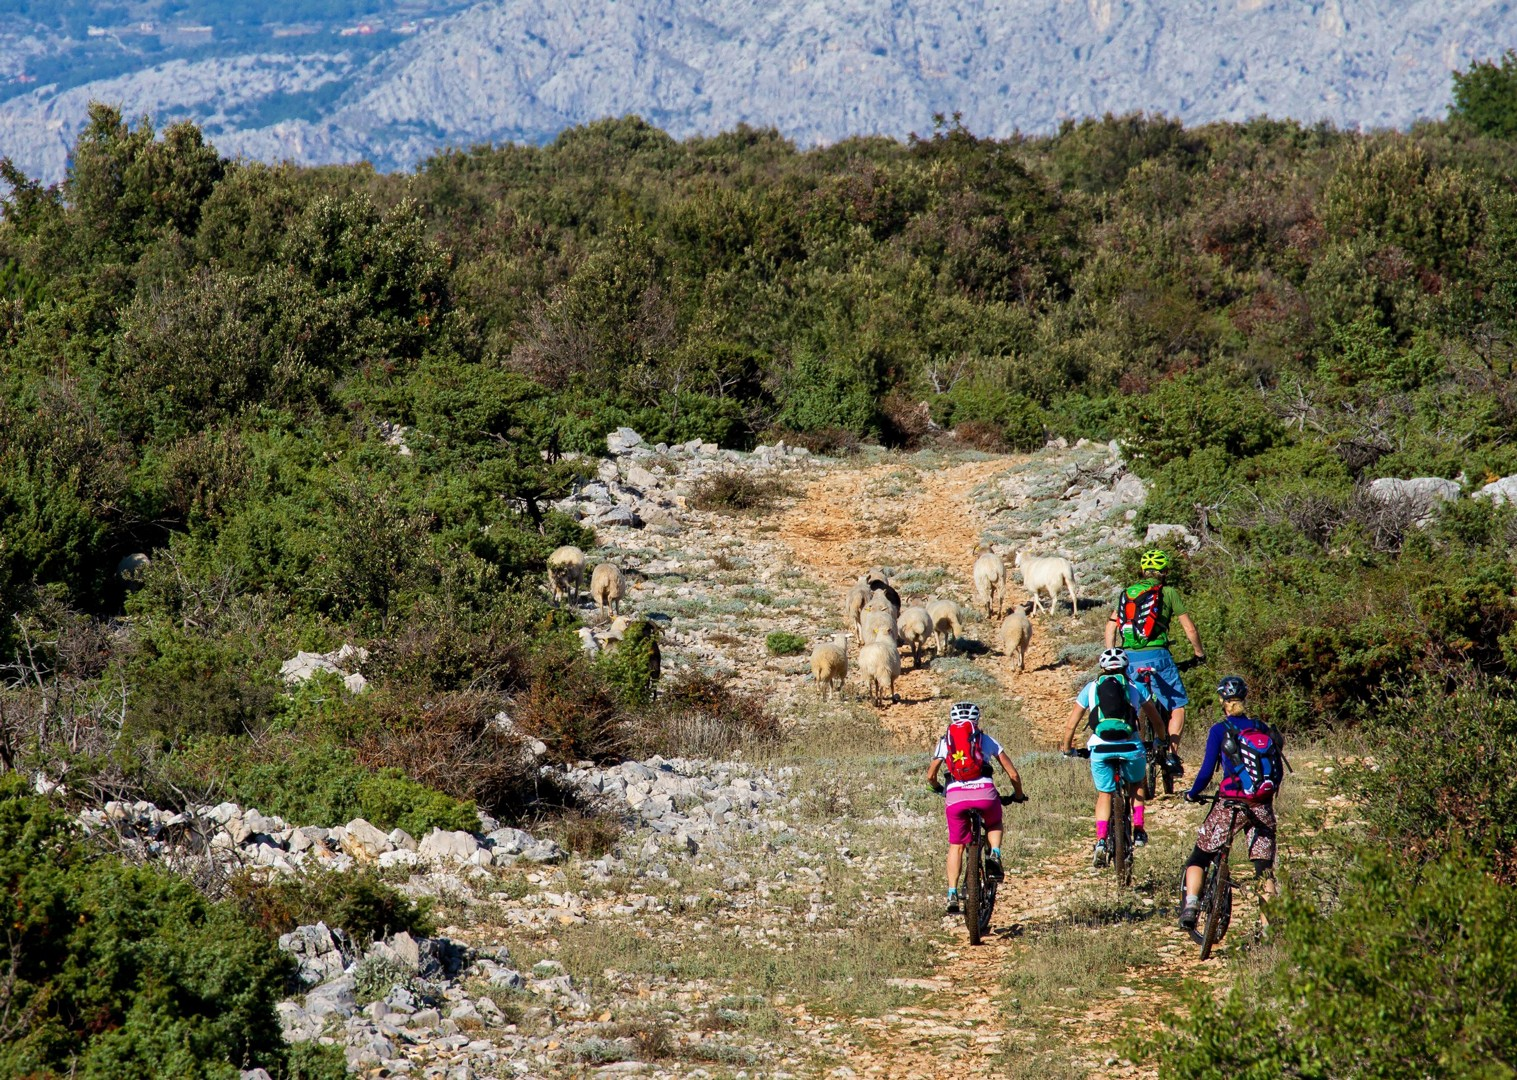 fun-singletrack-with-epic-sea-views-mountain-biking-croatia.jpg - NEW! Croatia - Terra Magica - Mountain Biking